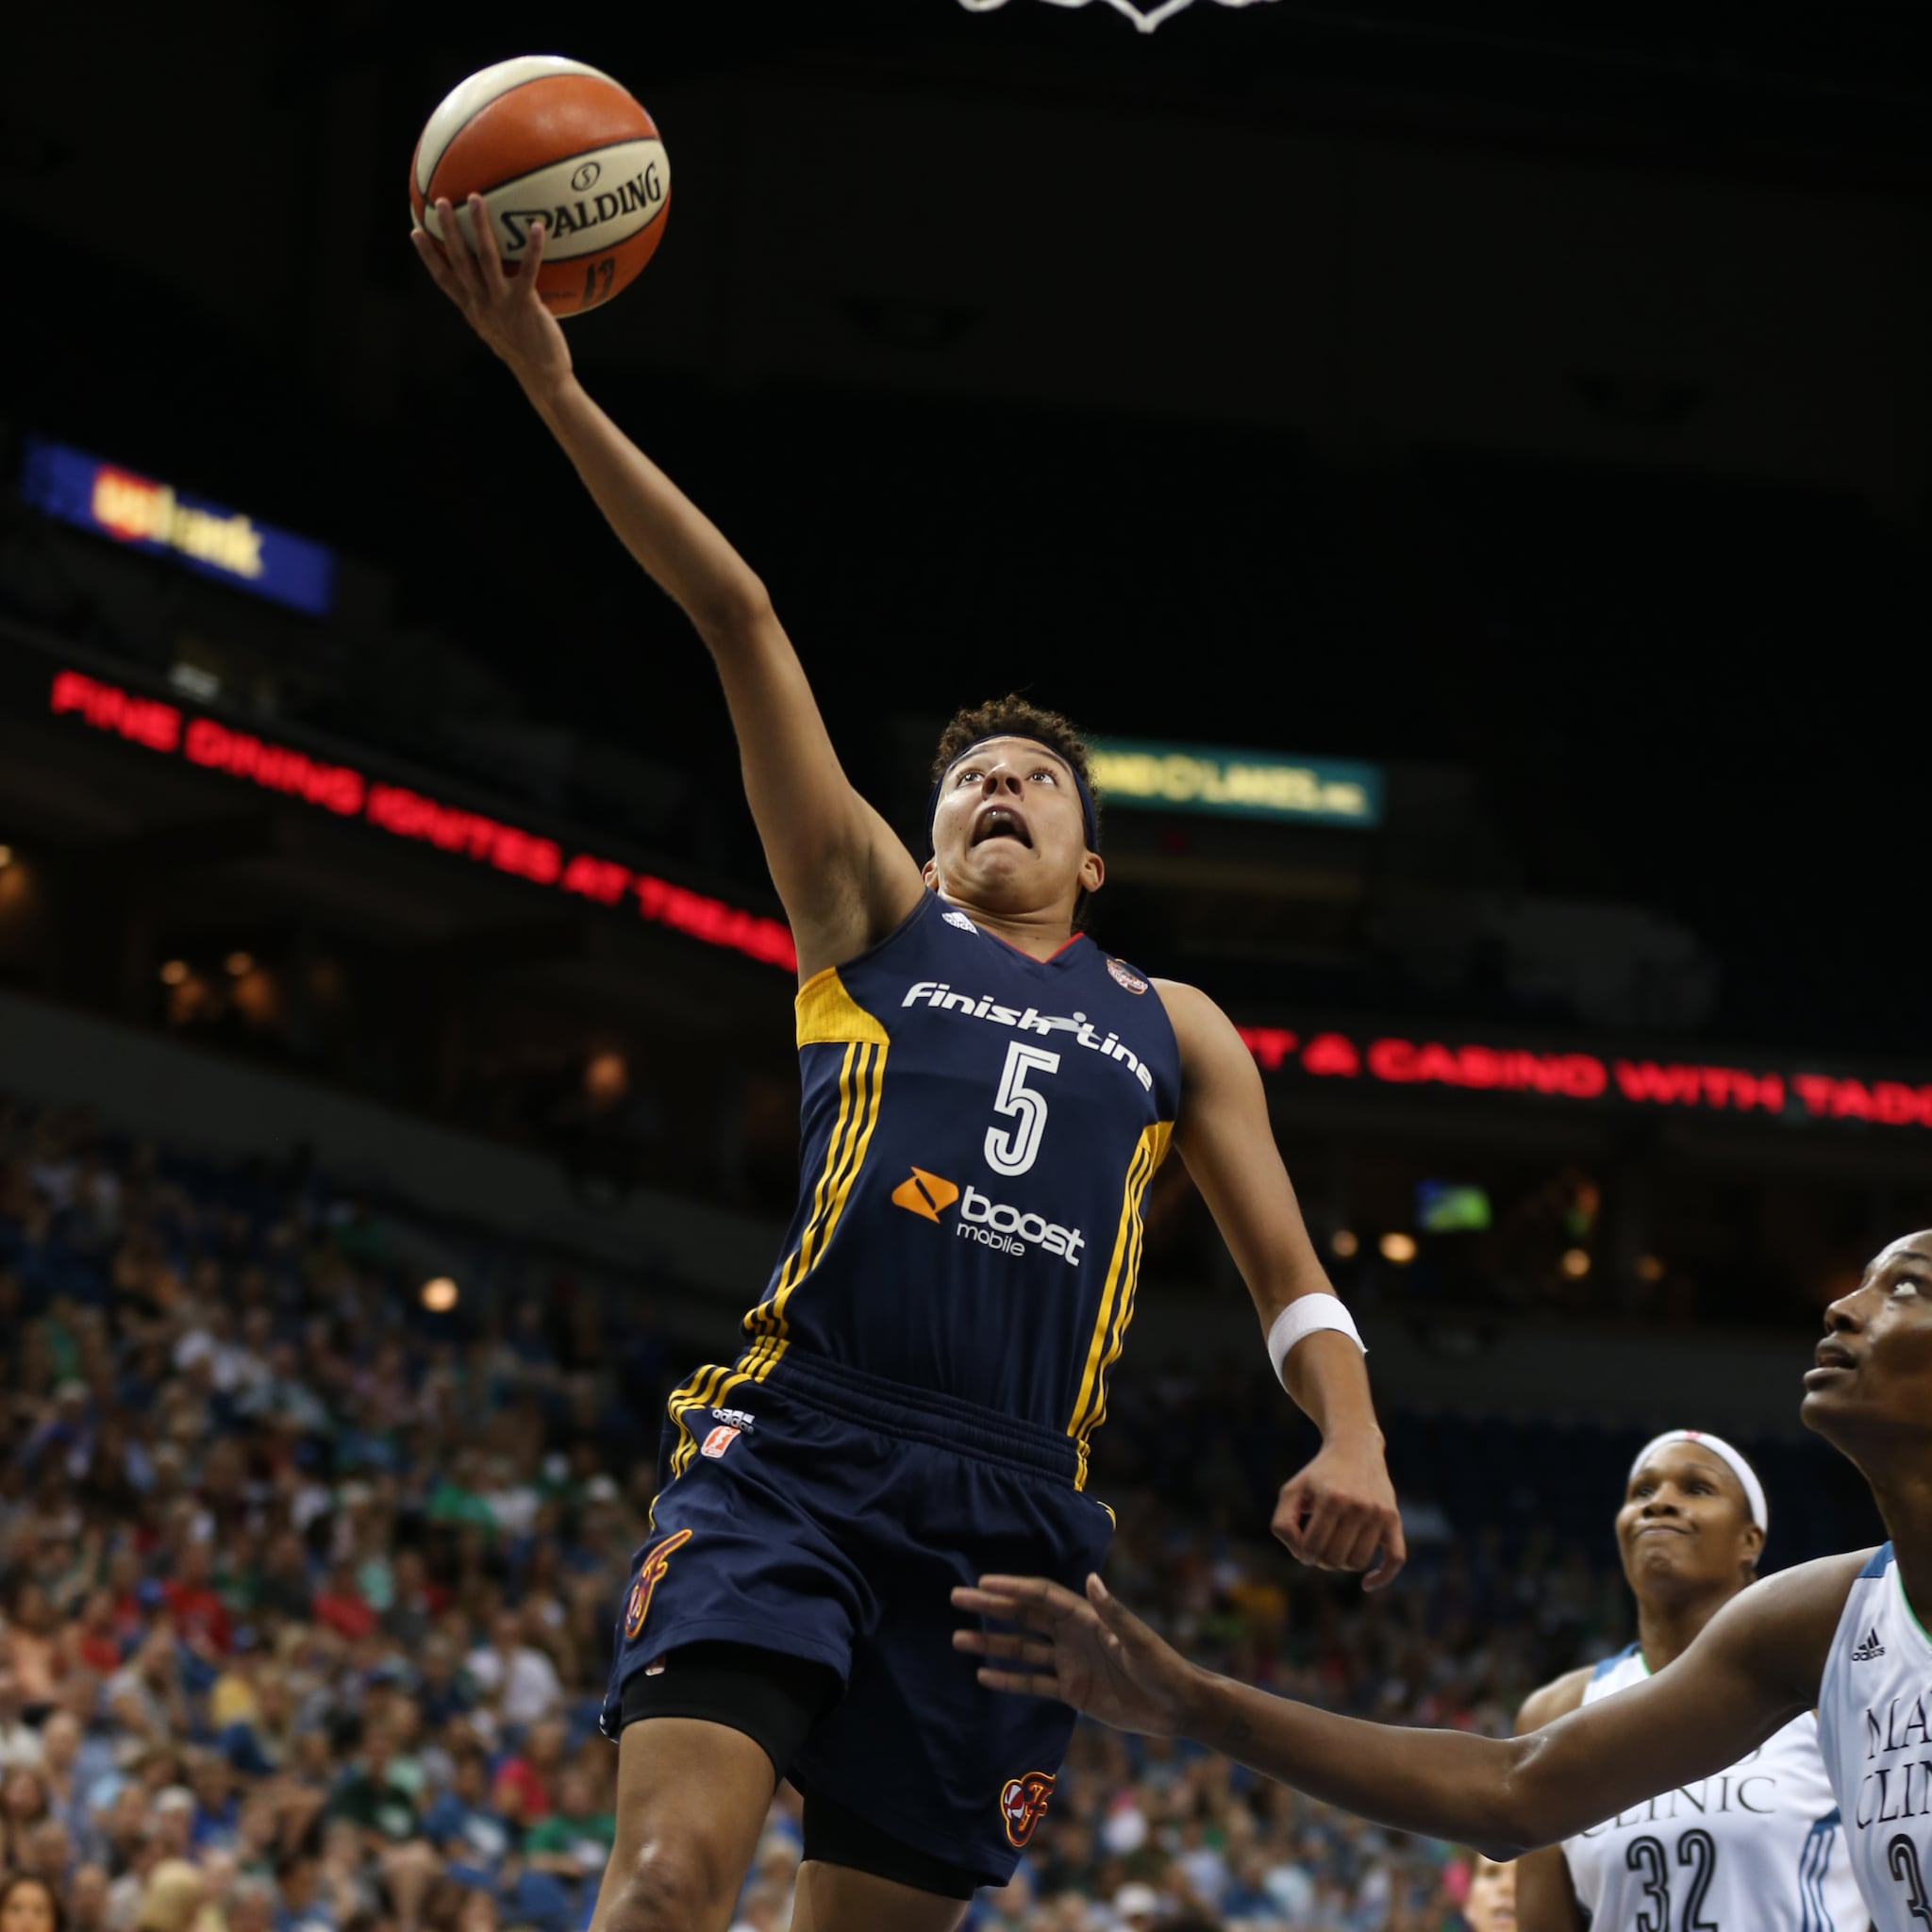 Fever guard Layshia Clarendon was held relatively quiet by Minnesota's frontcourt defense and finished with just nine points, three rebounds and three assists.